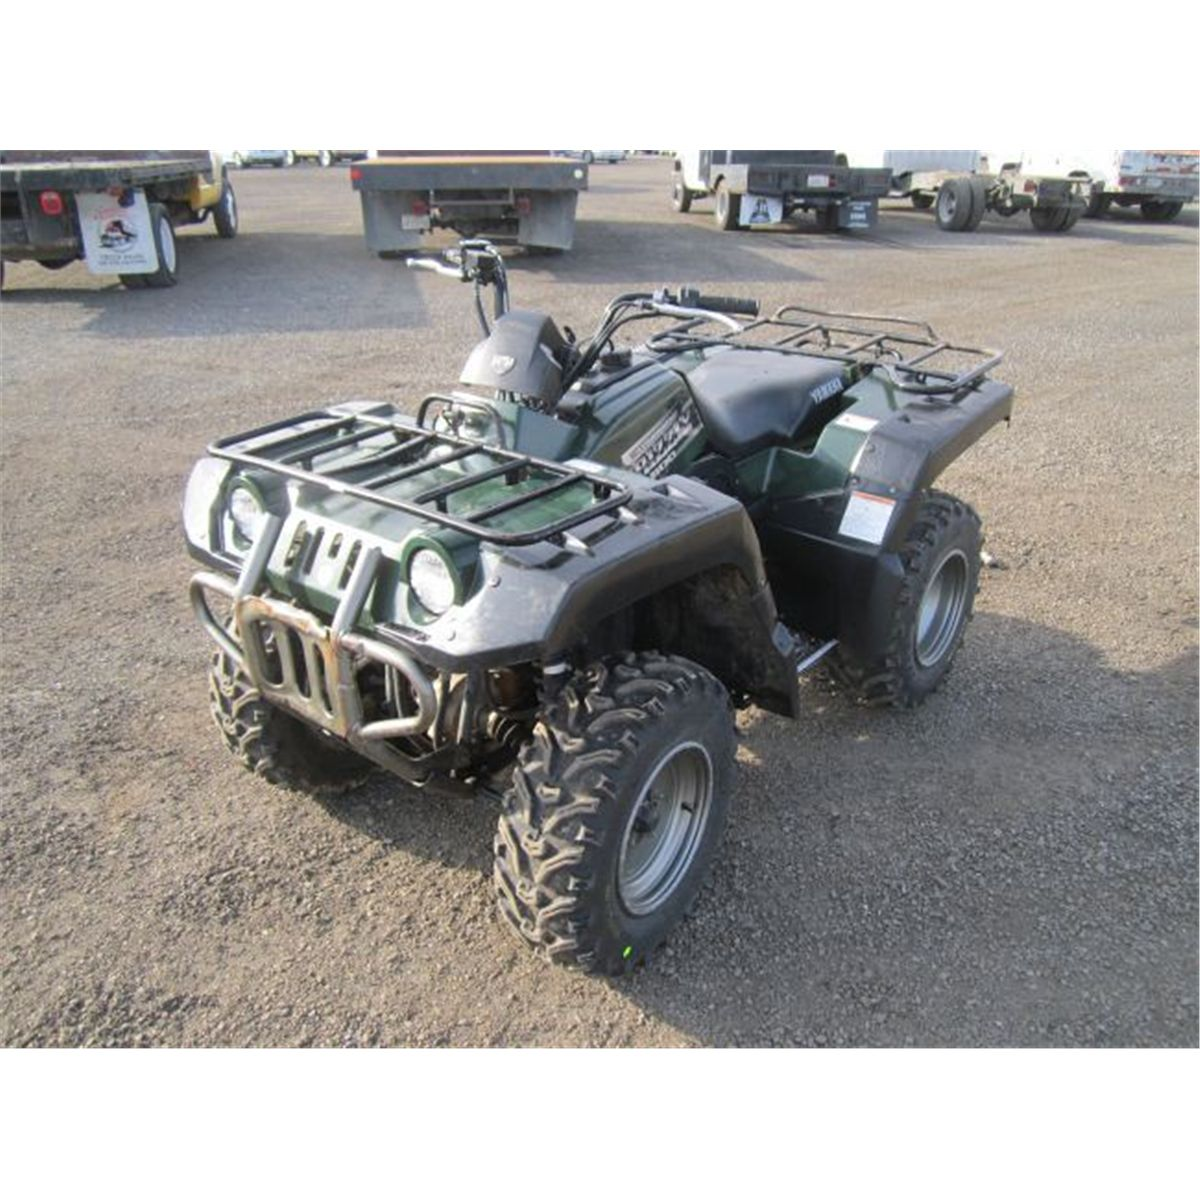 Yamaha Grizzly 600 Atv For Sale 1998 Ultramatic Wiring Diagram